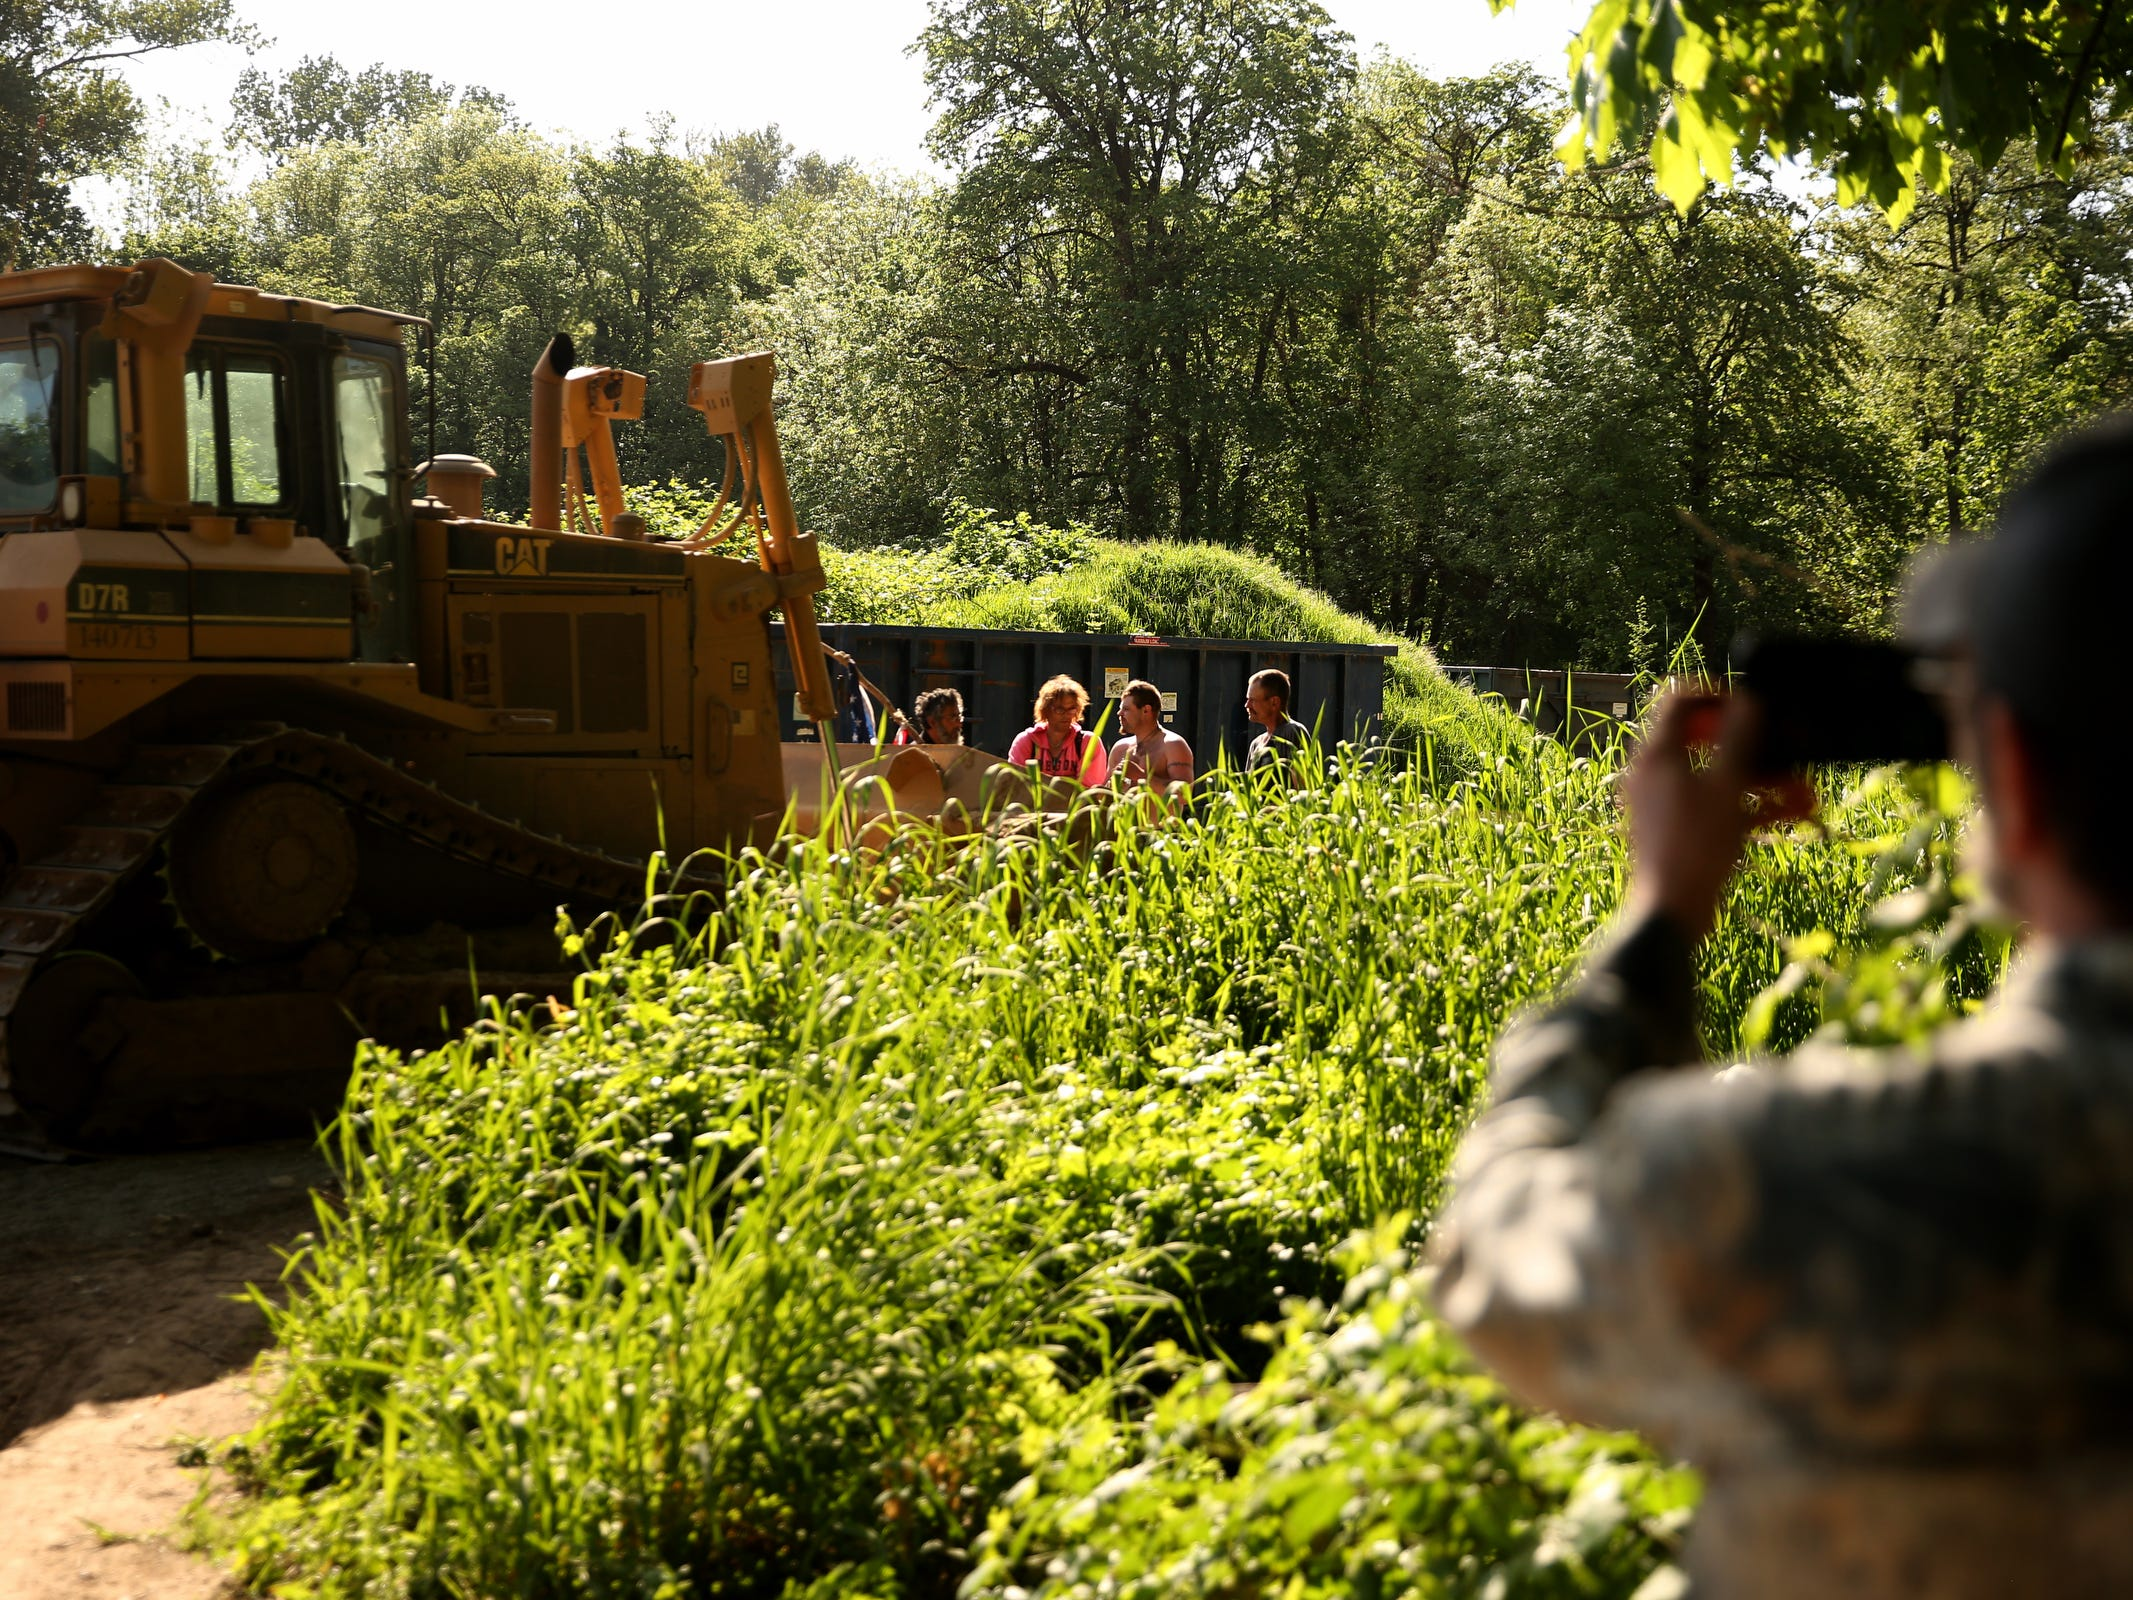 Art Scaglione, a volunteer and advocate for the homeless, takes photos as several people stand in front of a bulldozer coming onto a privately-owned rock quarry with a homeless camp near Wallace Marine Park in West Salem on May 7, 2019. Signs were posted throughout the camp recently stating personal property must be removed or it will be taken by the landowner and its designated agent starting May 7. An eviction can't be enforced until a court approves it.